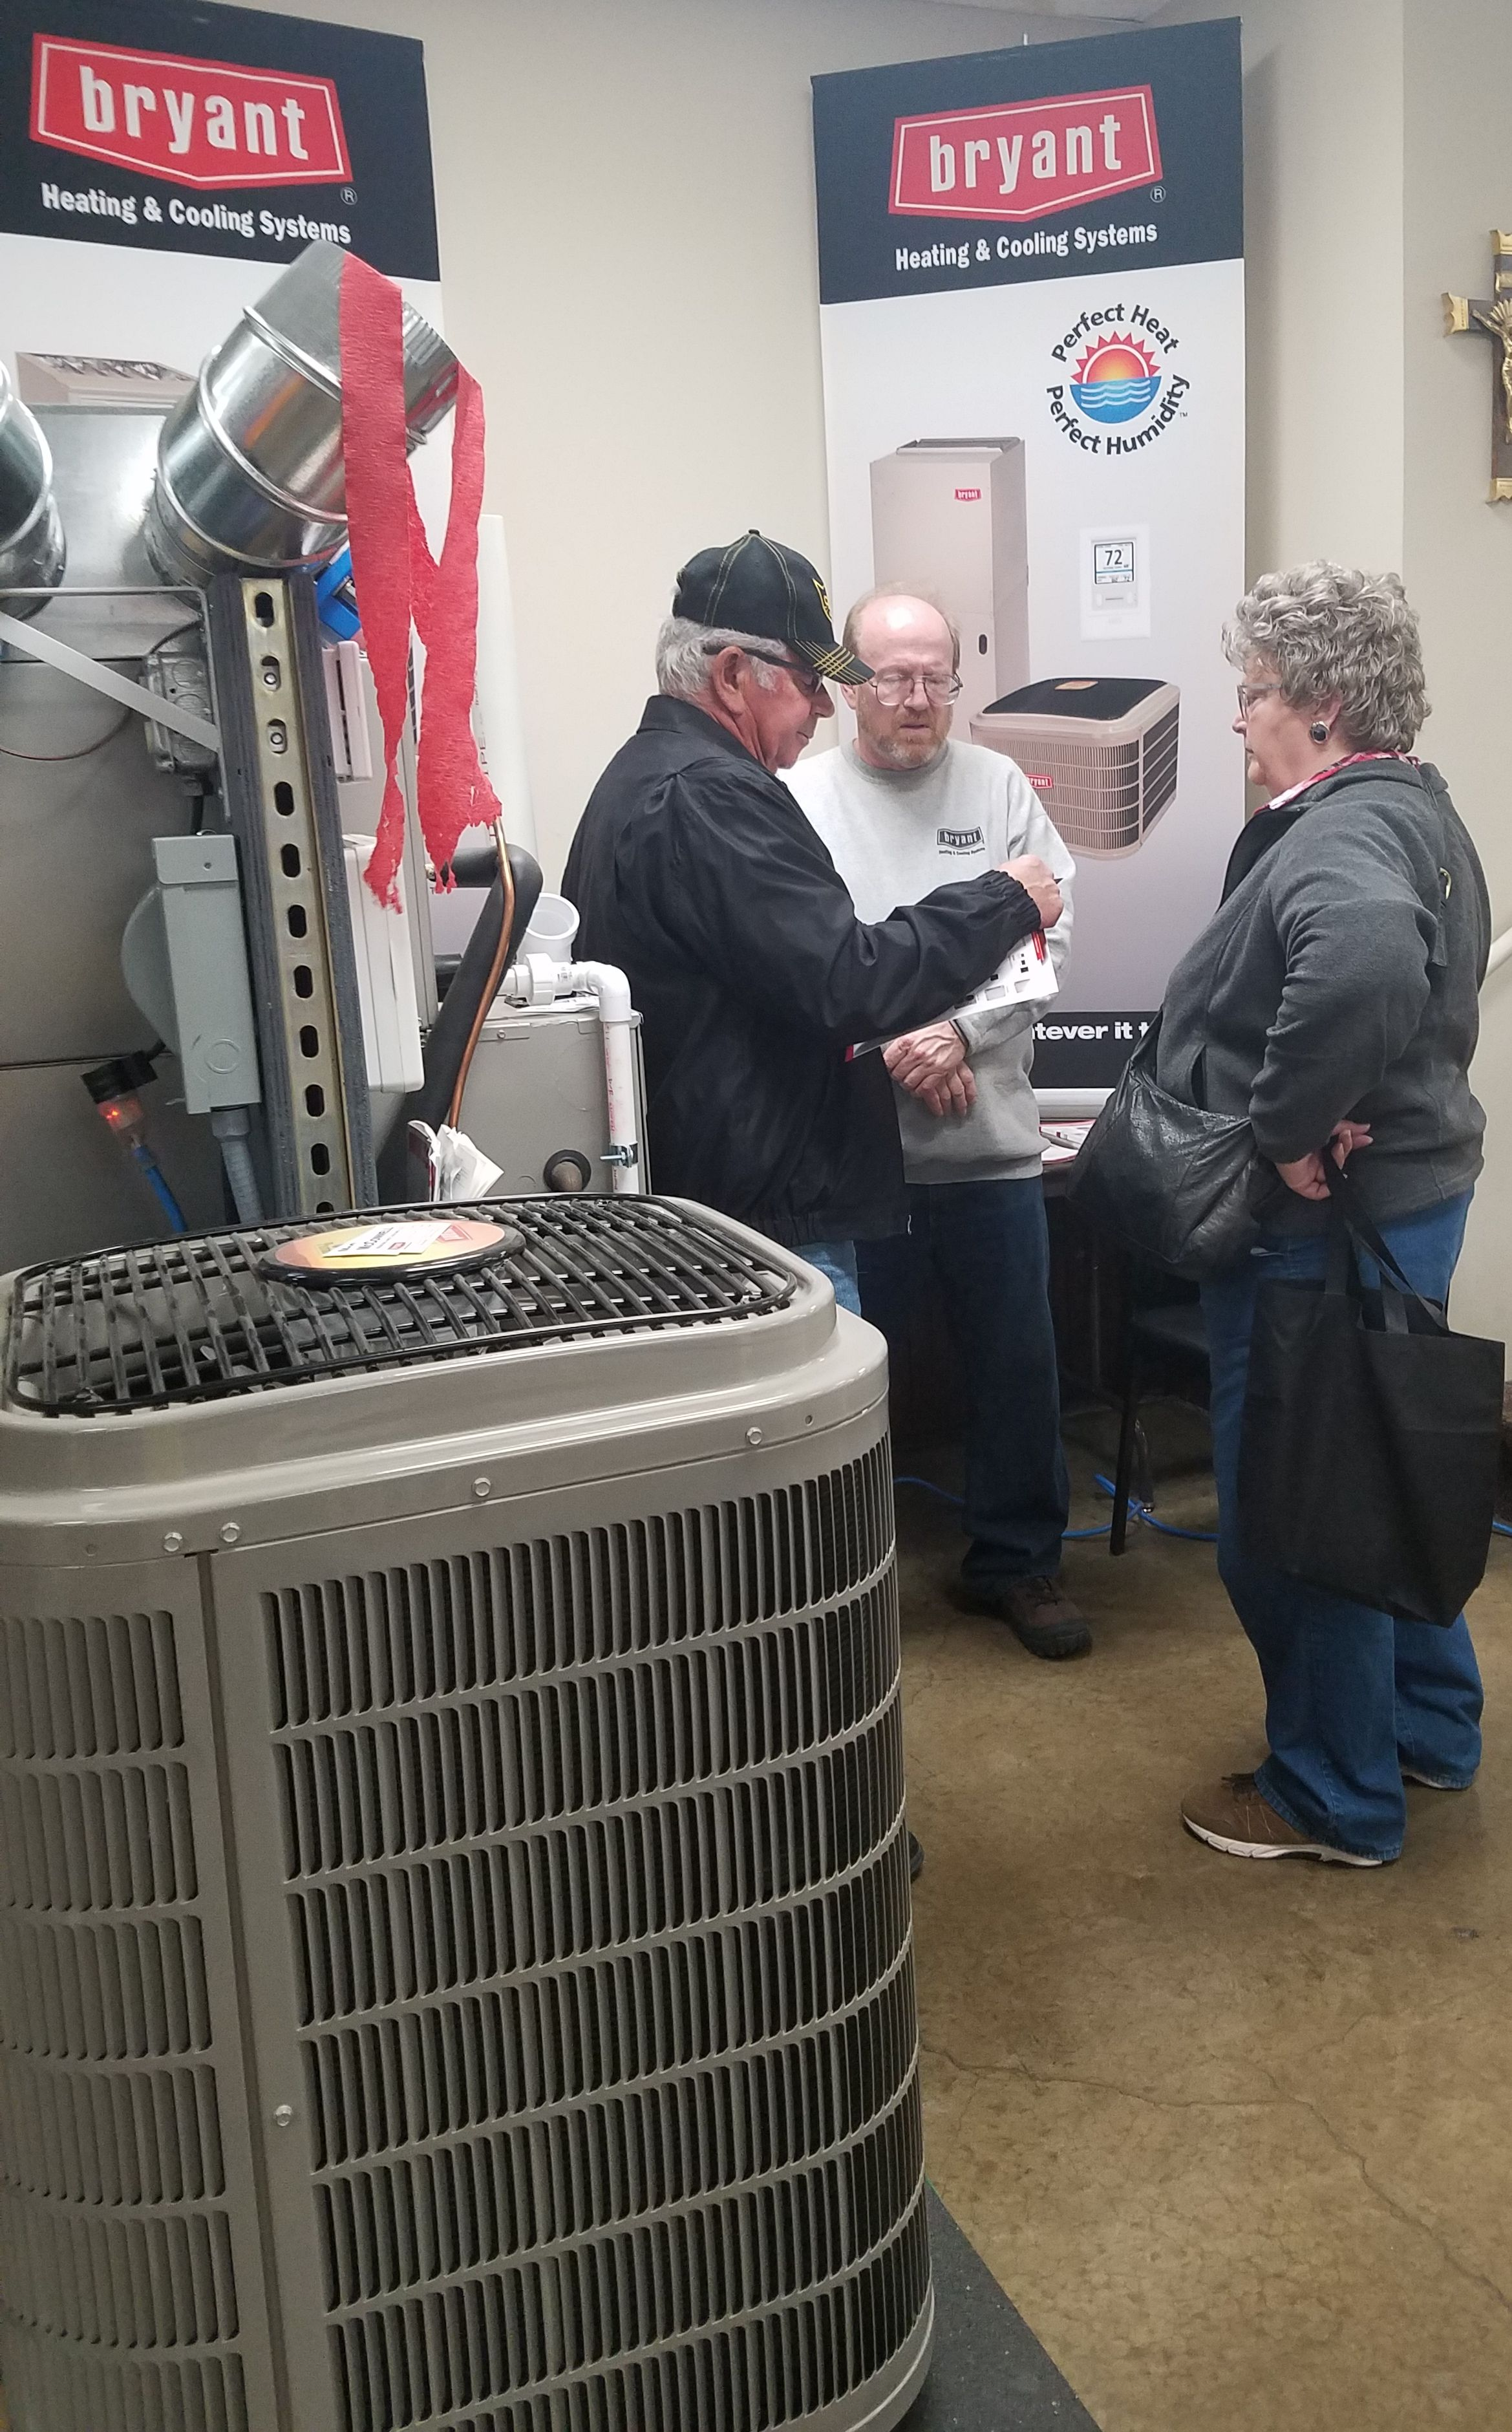 Mcconnell Plumbing Heating 975 N Henderson St Galesburg Il 61401 309 342 5780 Heating Cooling System Galesburg Heat